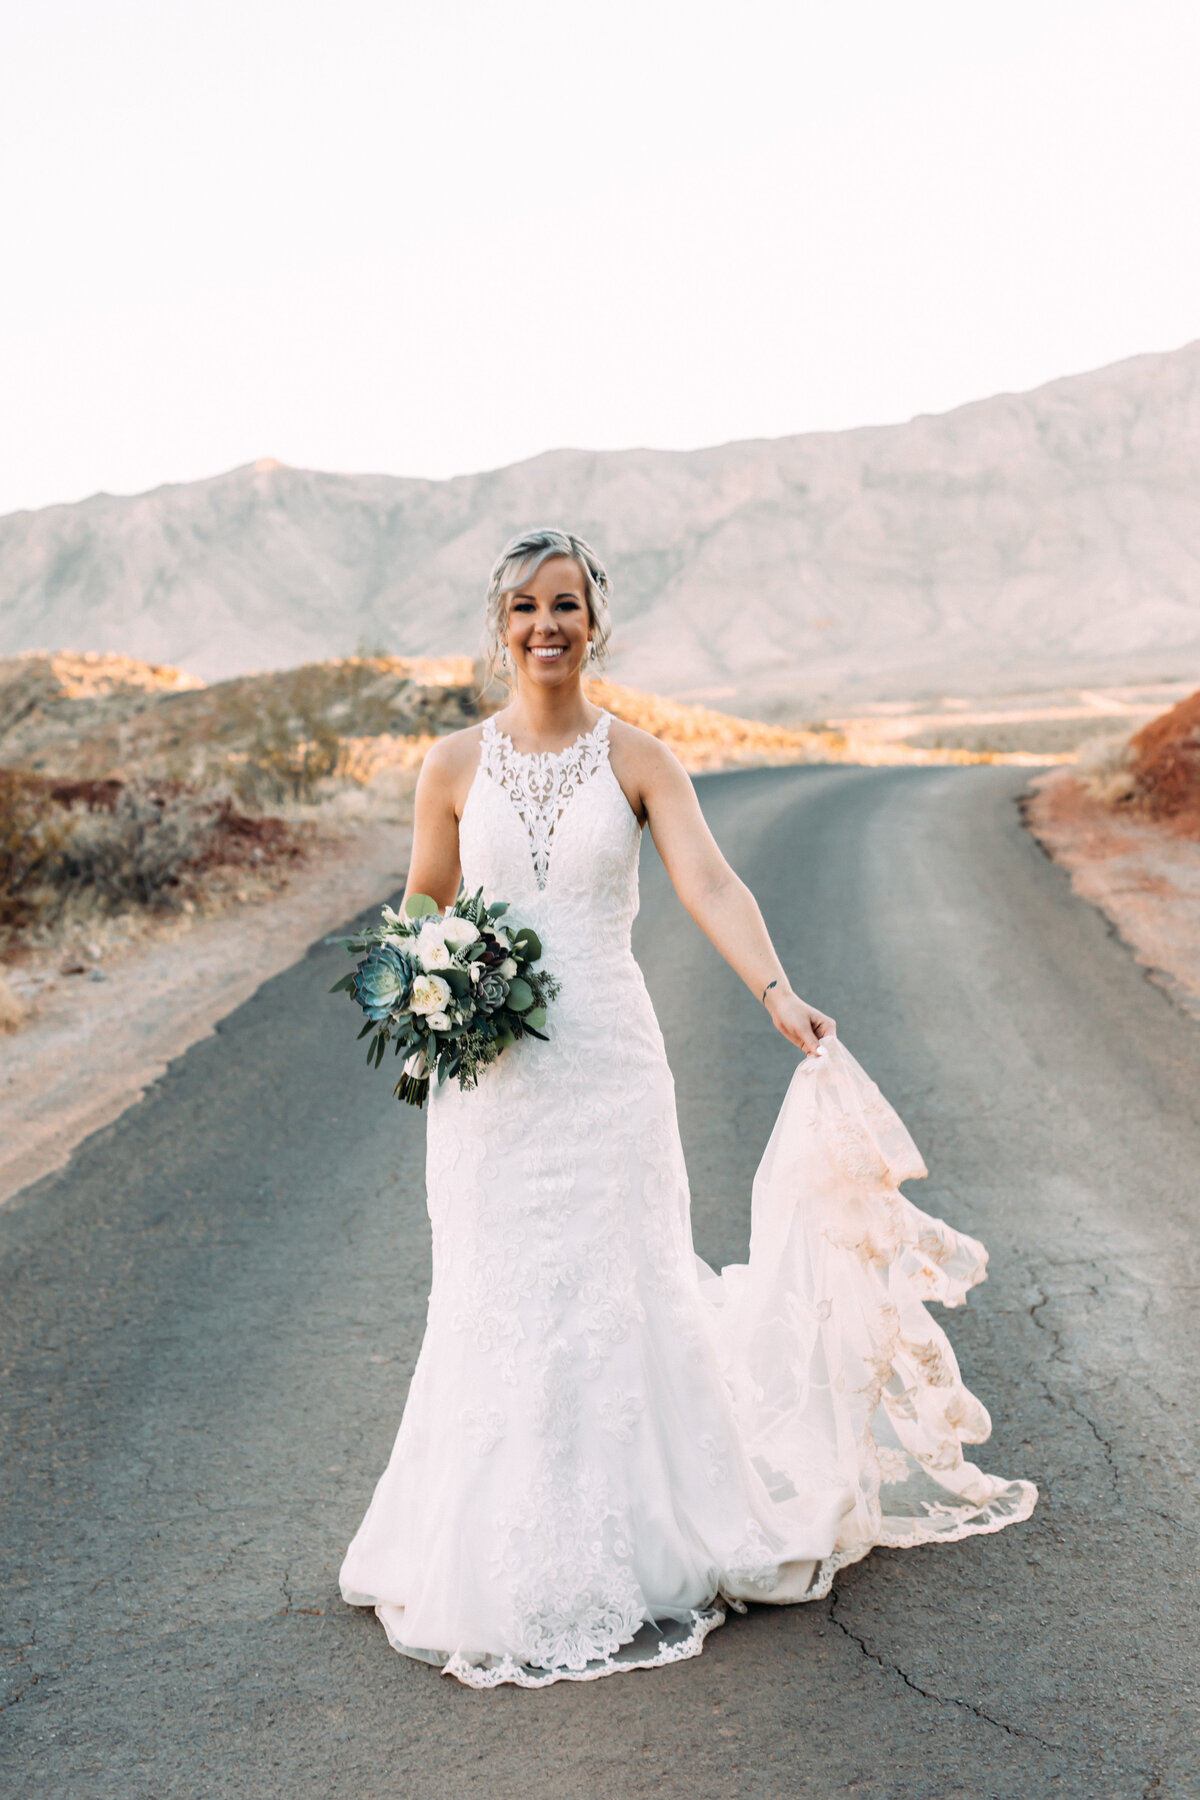 Heather+Ivan|AshlynSavannahPhoto|ValleyofFireElopement-112